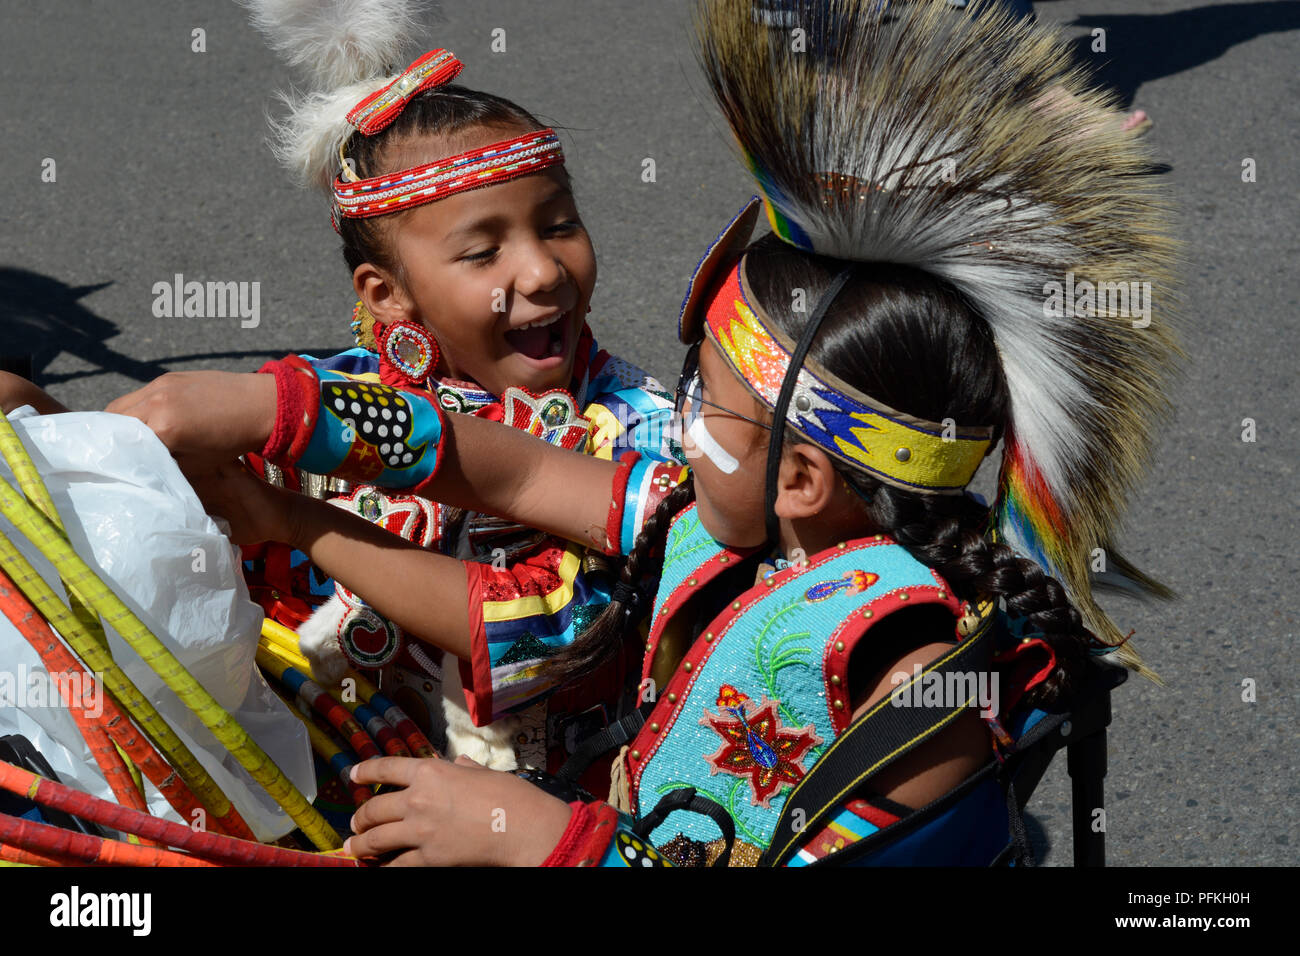 Native-American children wearing traditional Plains Indian regalia at the Santa Fe Indian Market. - Stock Image